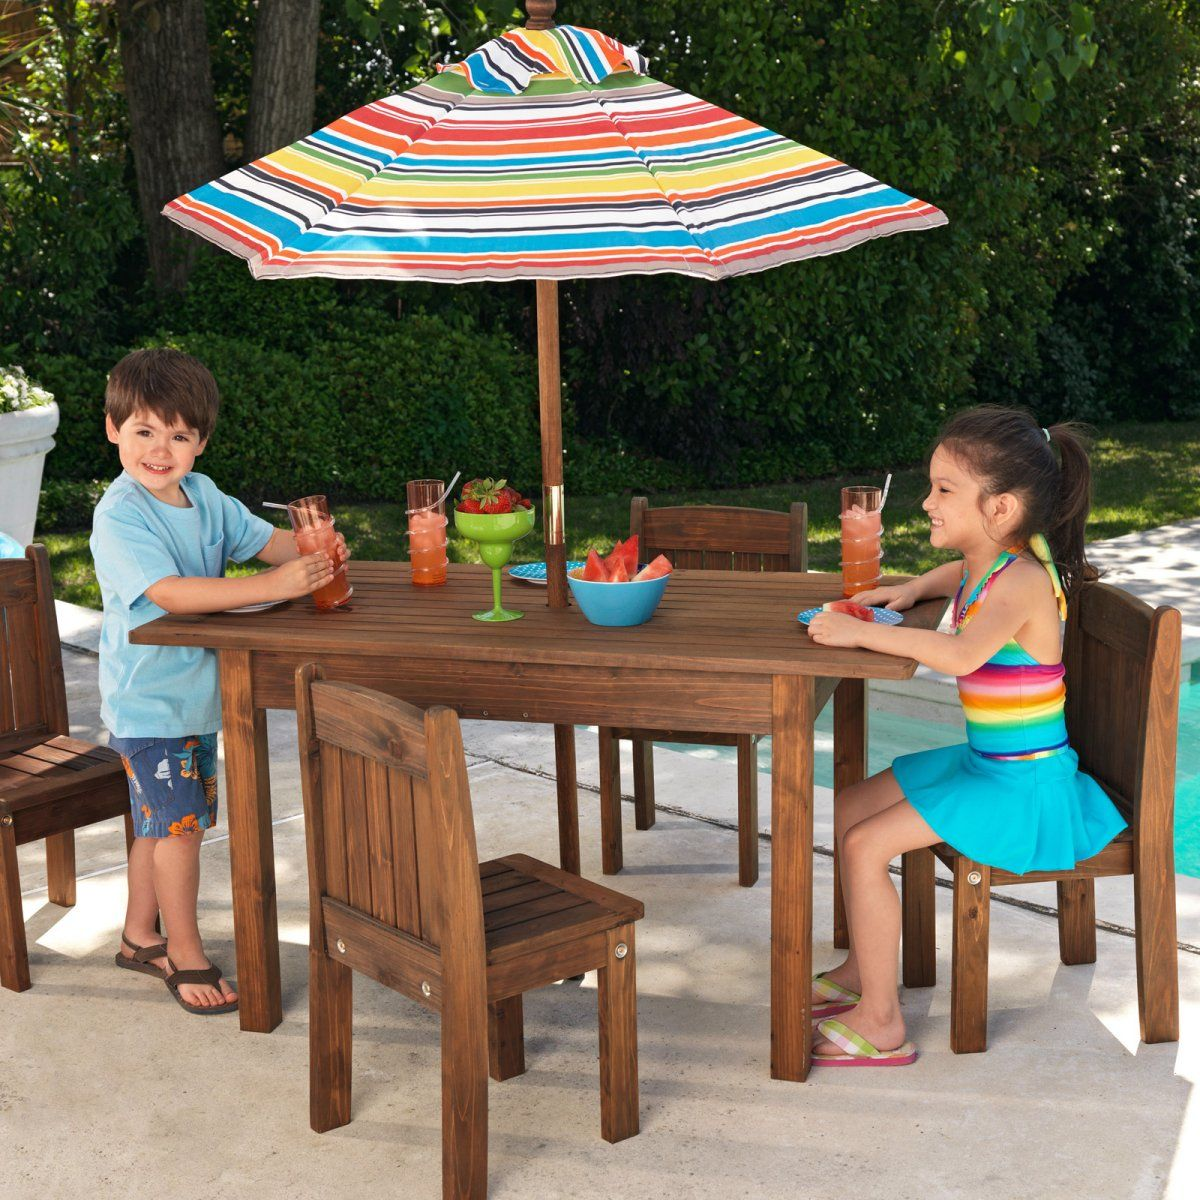 Kidkraft Outdoor Table And 4 Stacking Chairs With Striped Umbrella Kids Tables At